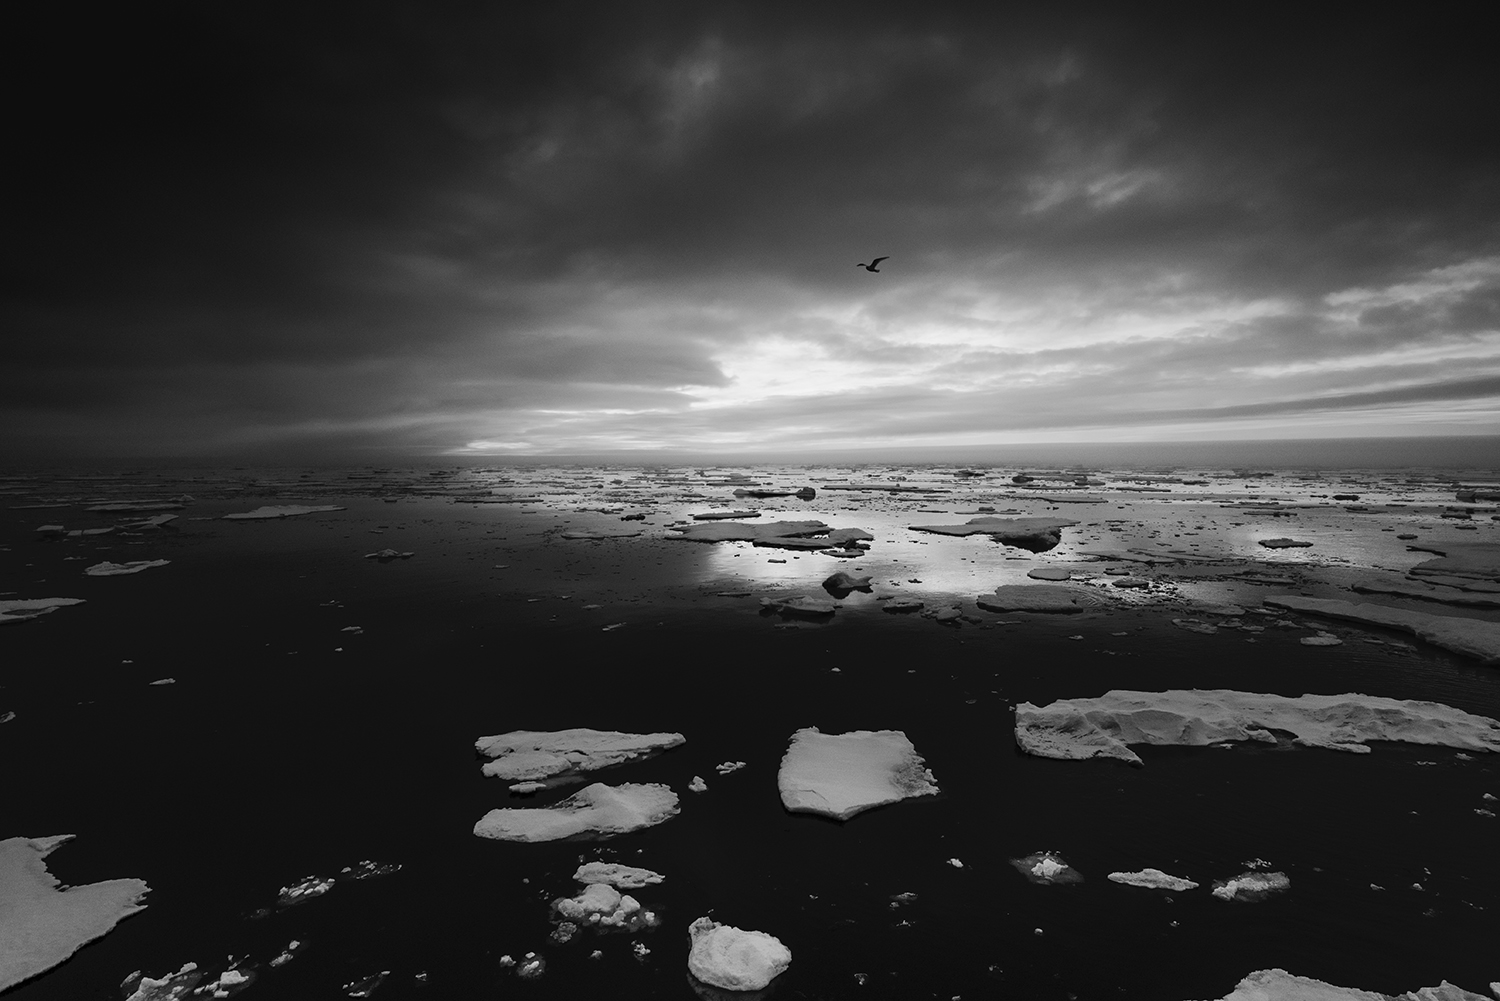 The extent of the Arctic pack ice, Greenland Sea, Northeast Coast of Greenland. Temperatures rise faster in the Arctic than anywhere else, and while scientists are warning of the mounting risks of climate change, oil companies regards the decline of sea ice as a new business opportunity.